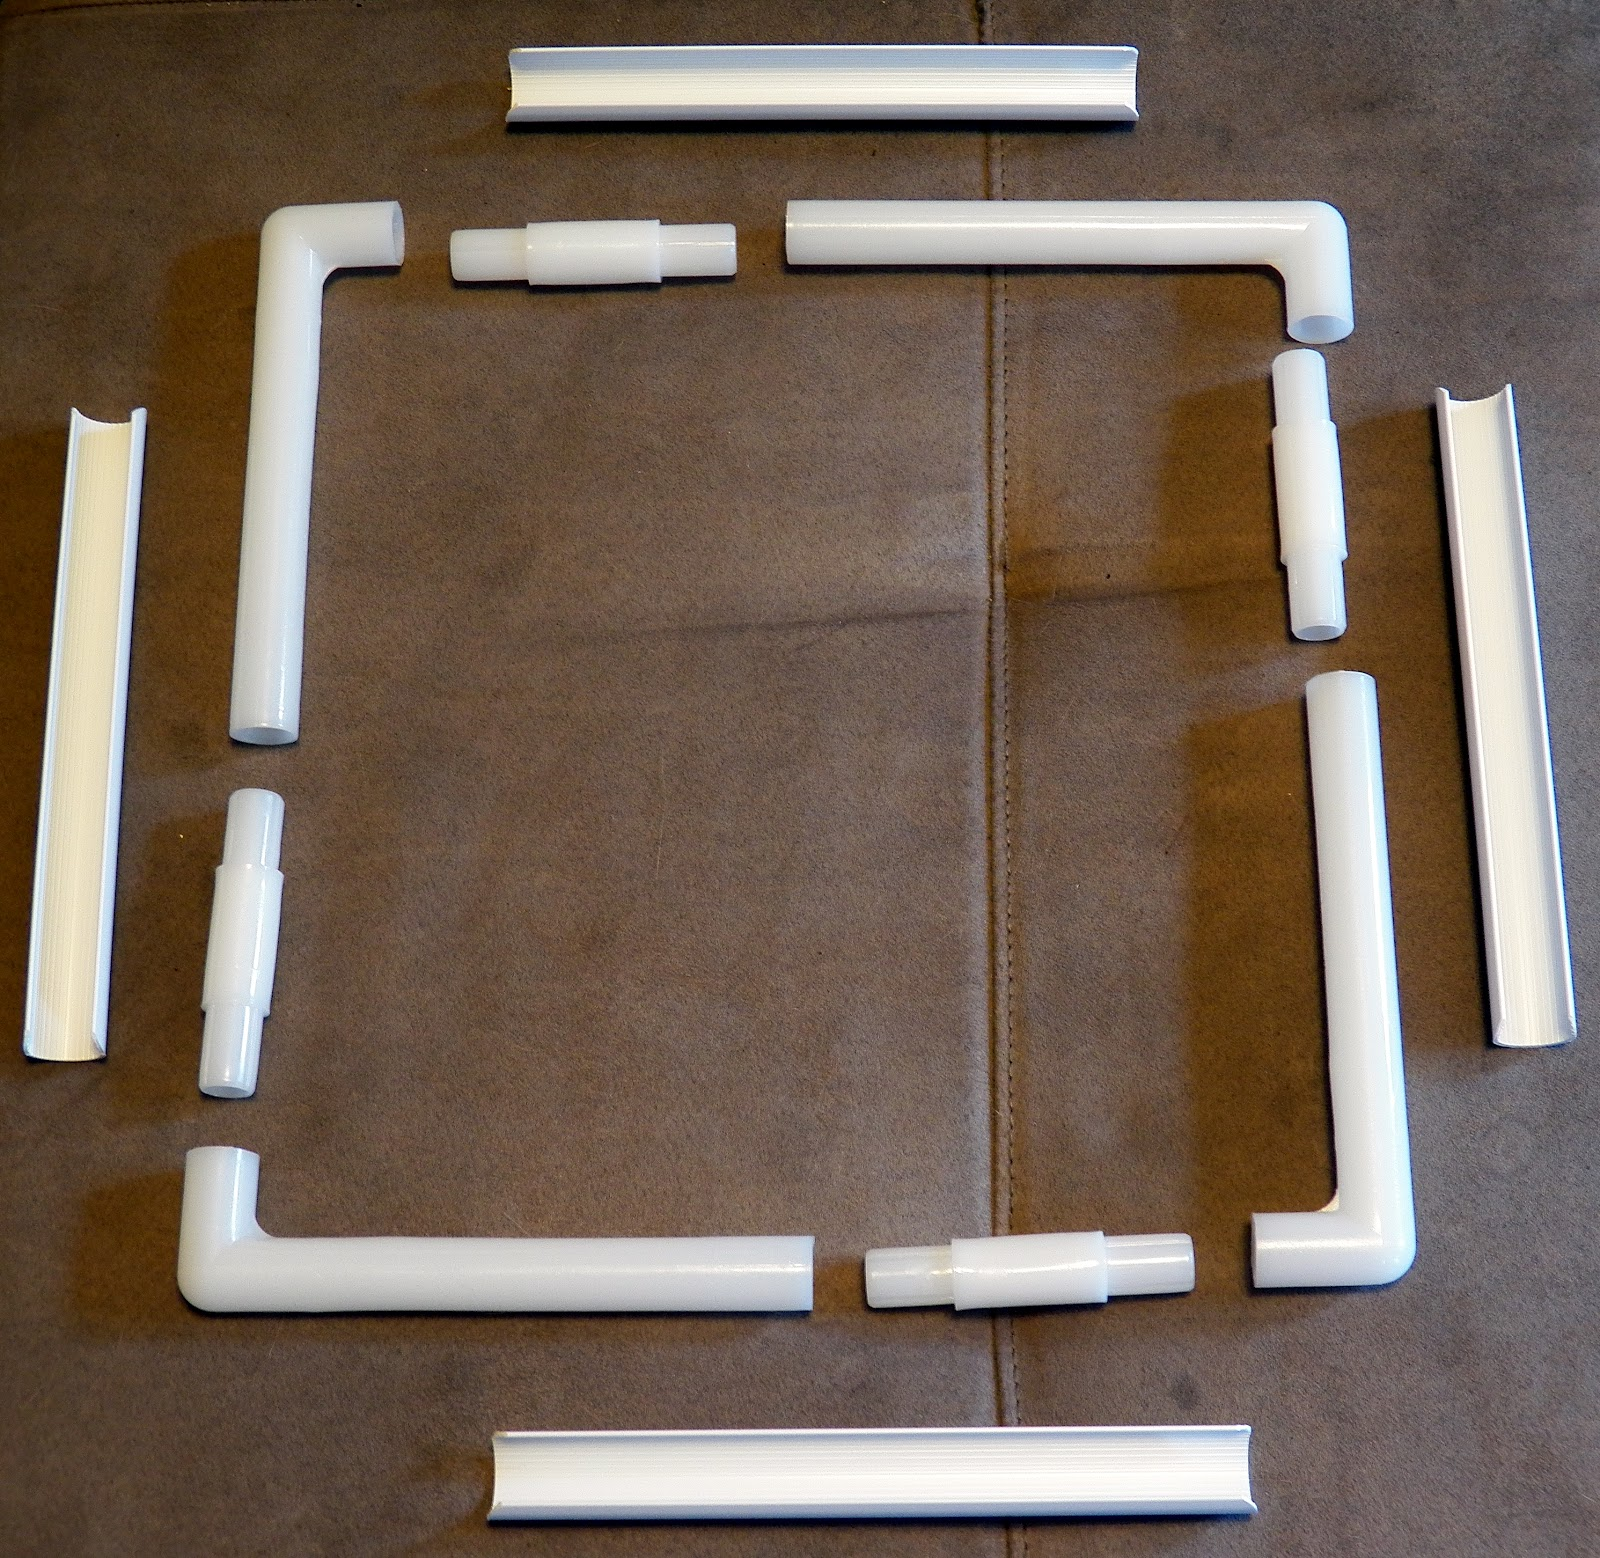 11 q snap frame disassembled